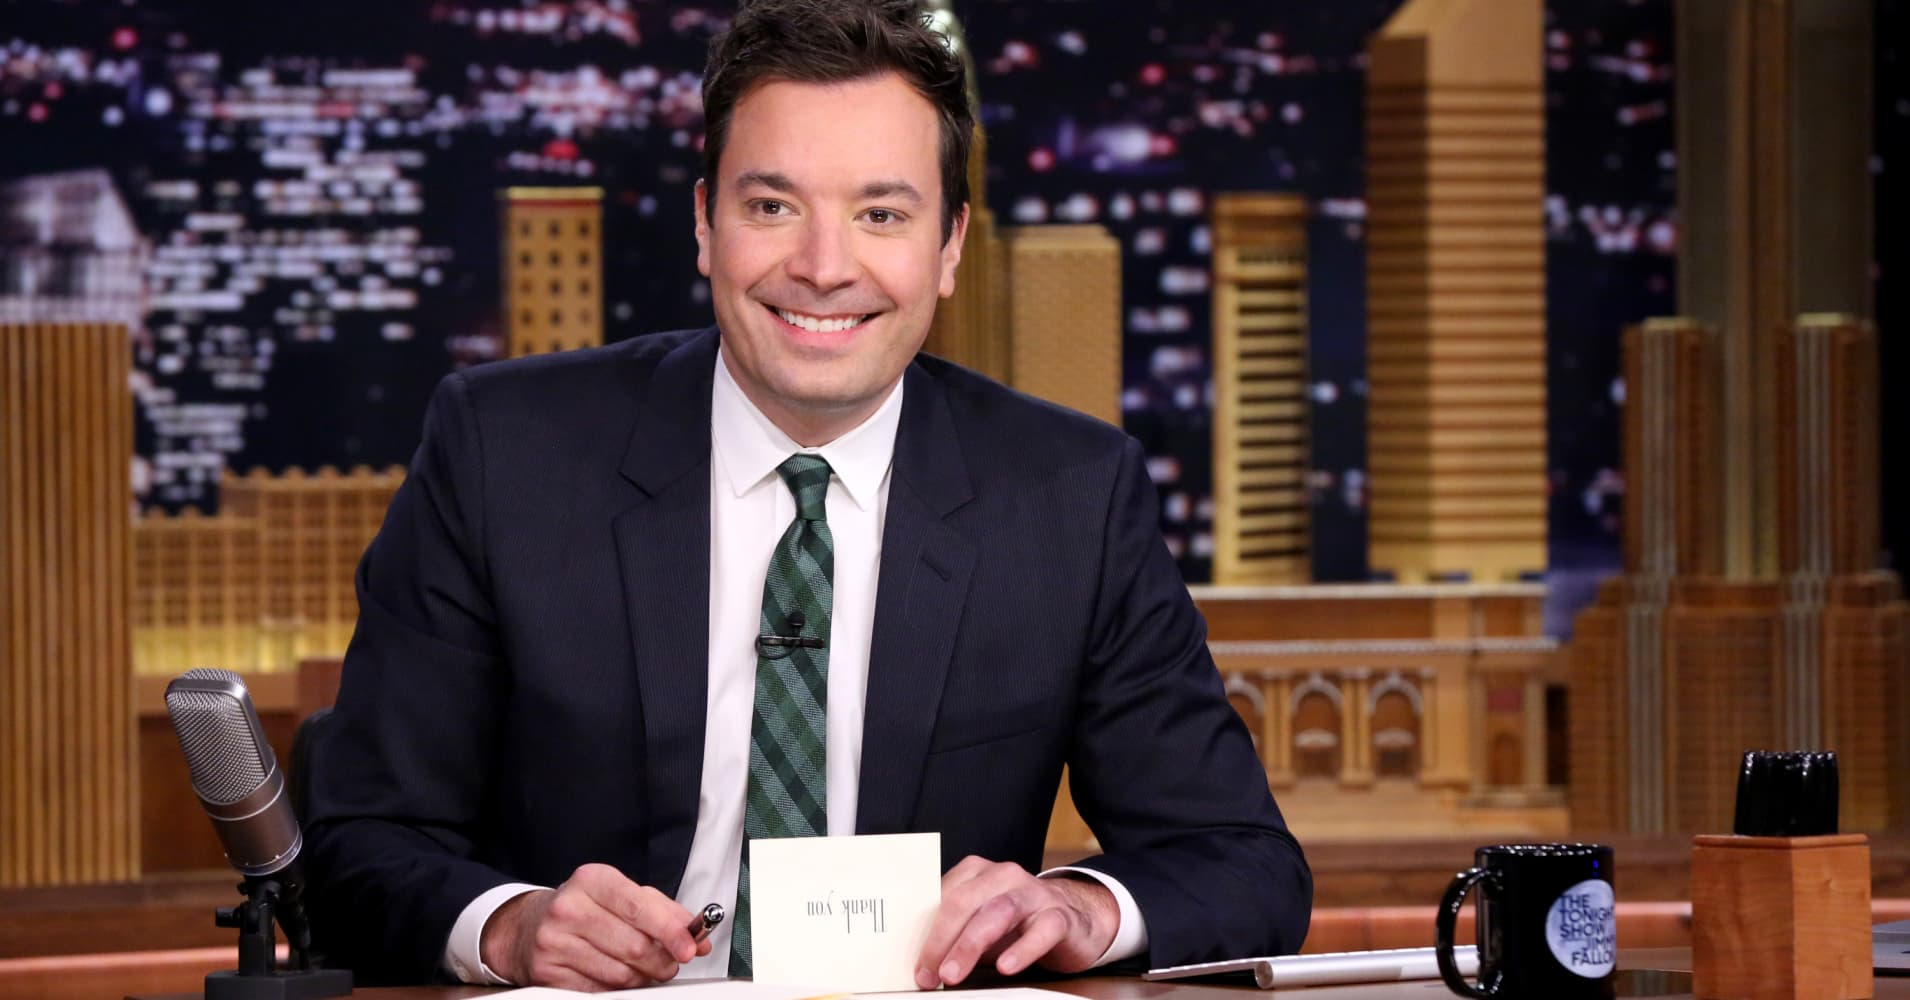 THE TONIGHT SHOW STARRING JIMMY FALLON -- Episode 0367 -- Pictured: Host Jimmy Fallon during Thank You Notes on November 13, 2015 -- (Photo by: Douglas Gorenstein/NBC/NBCU Photo Bank via Getty Images)